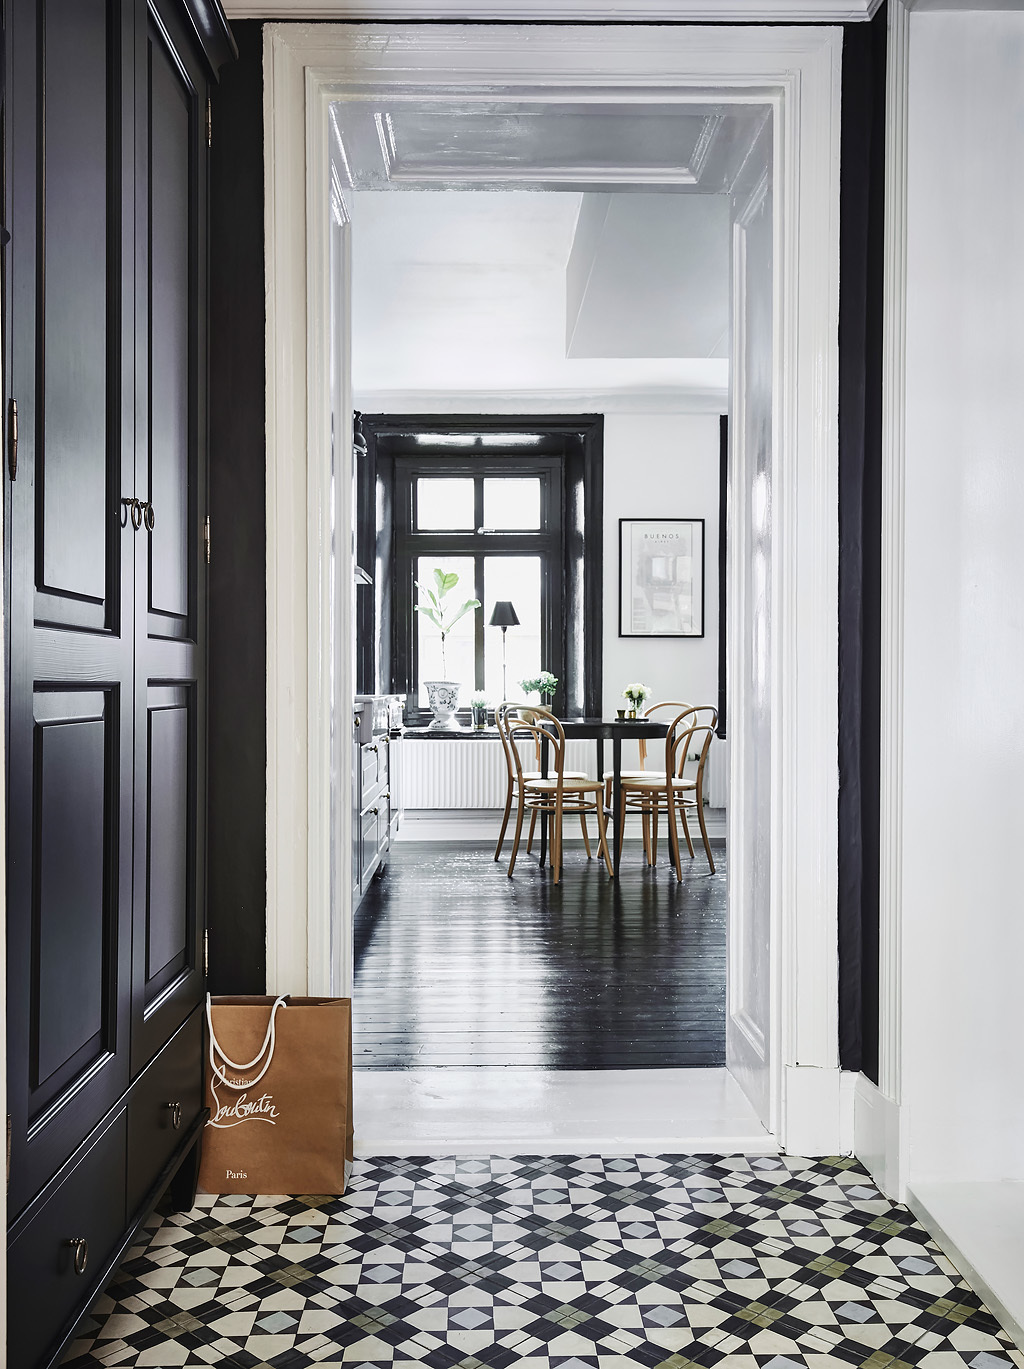 Dramatic kitchen in black and gray, black floor and windows, via http://www.scandinavianlovesong.com/